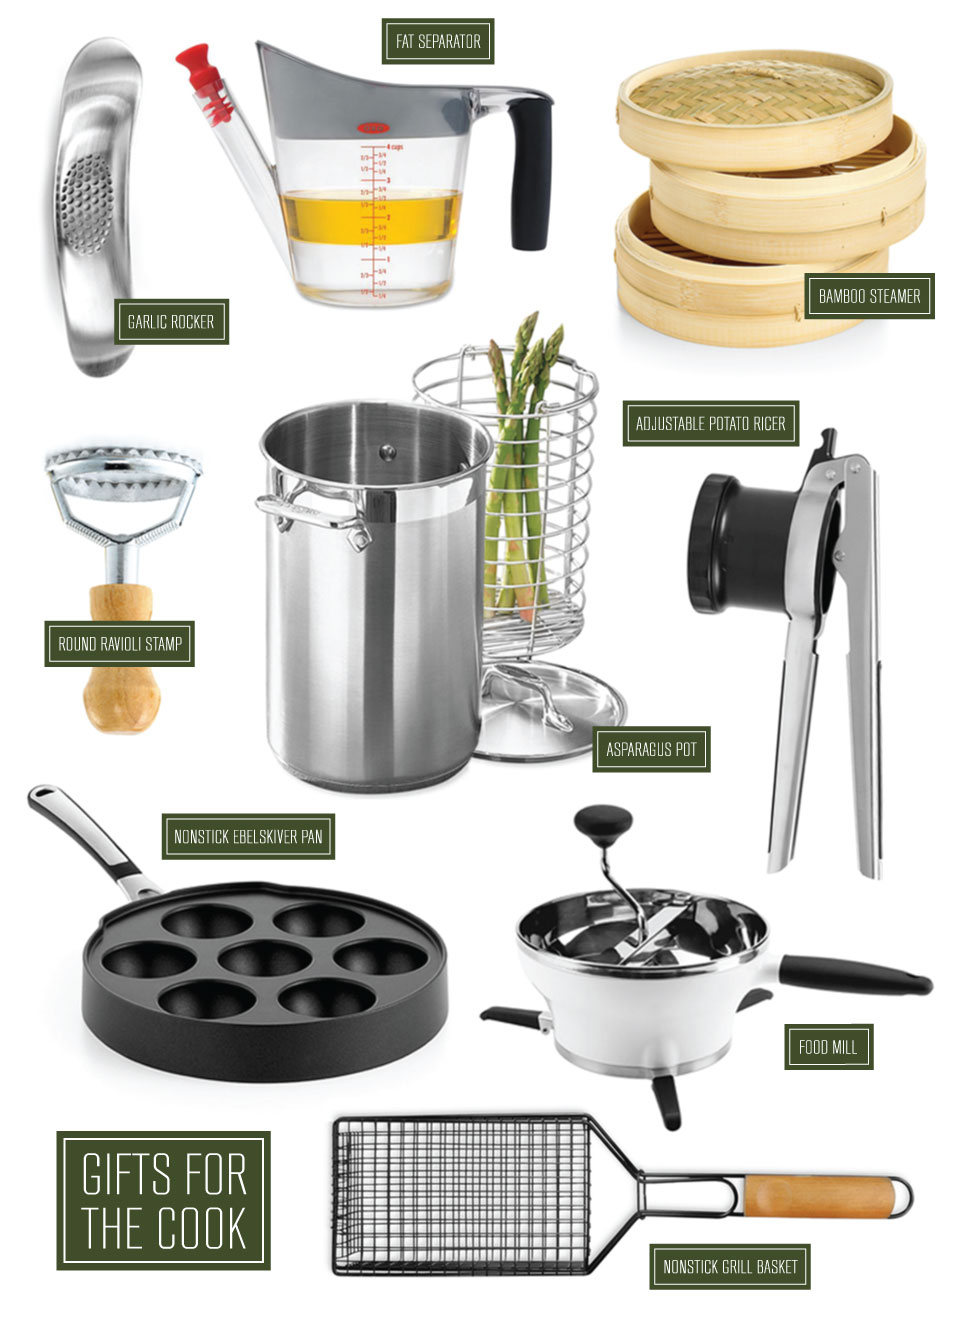 Gift guide for chefs in your life!